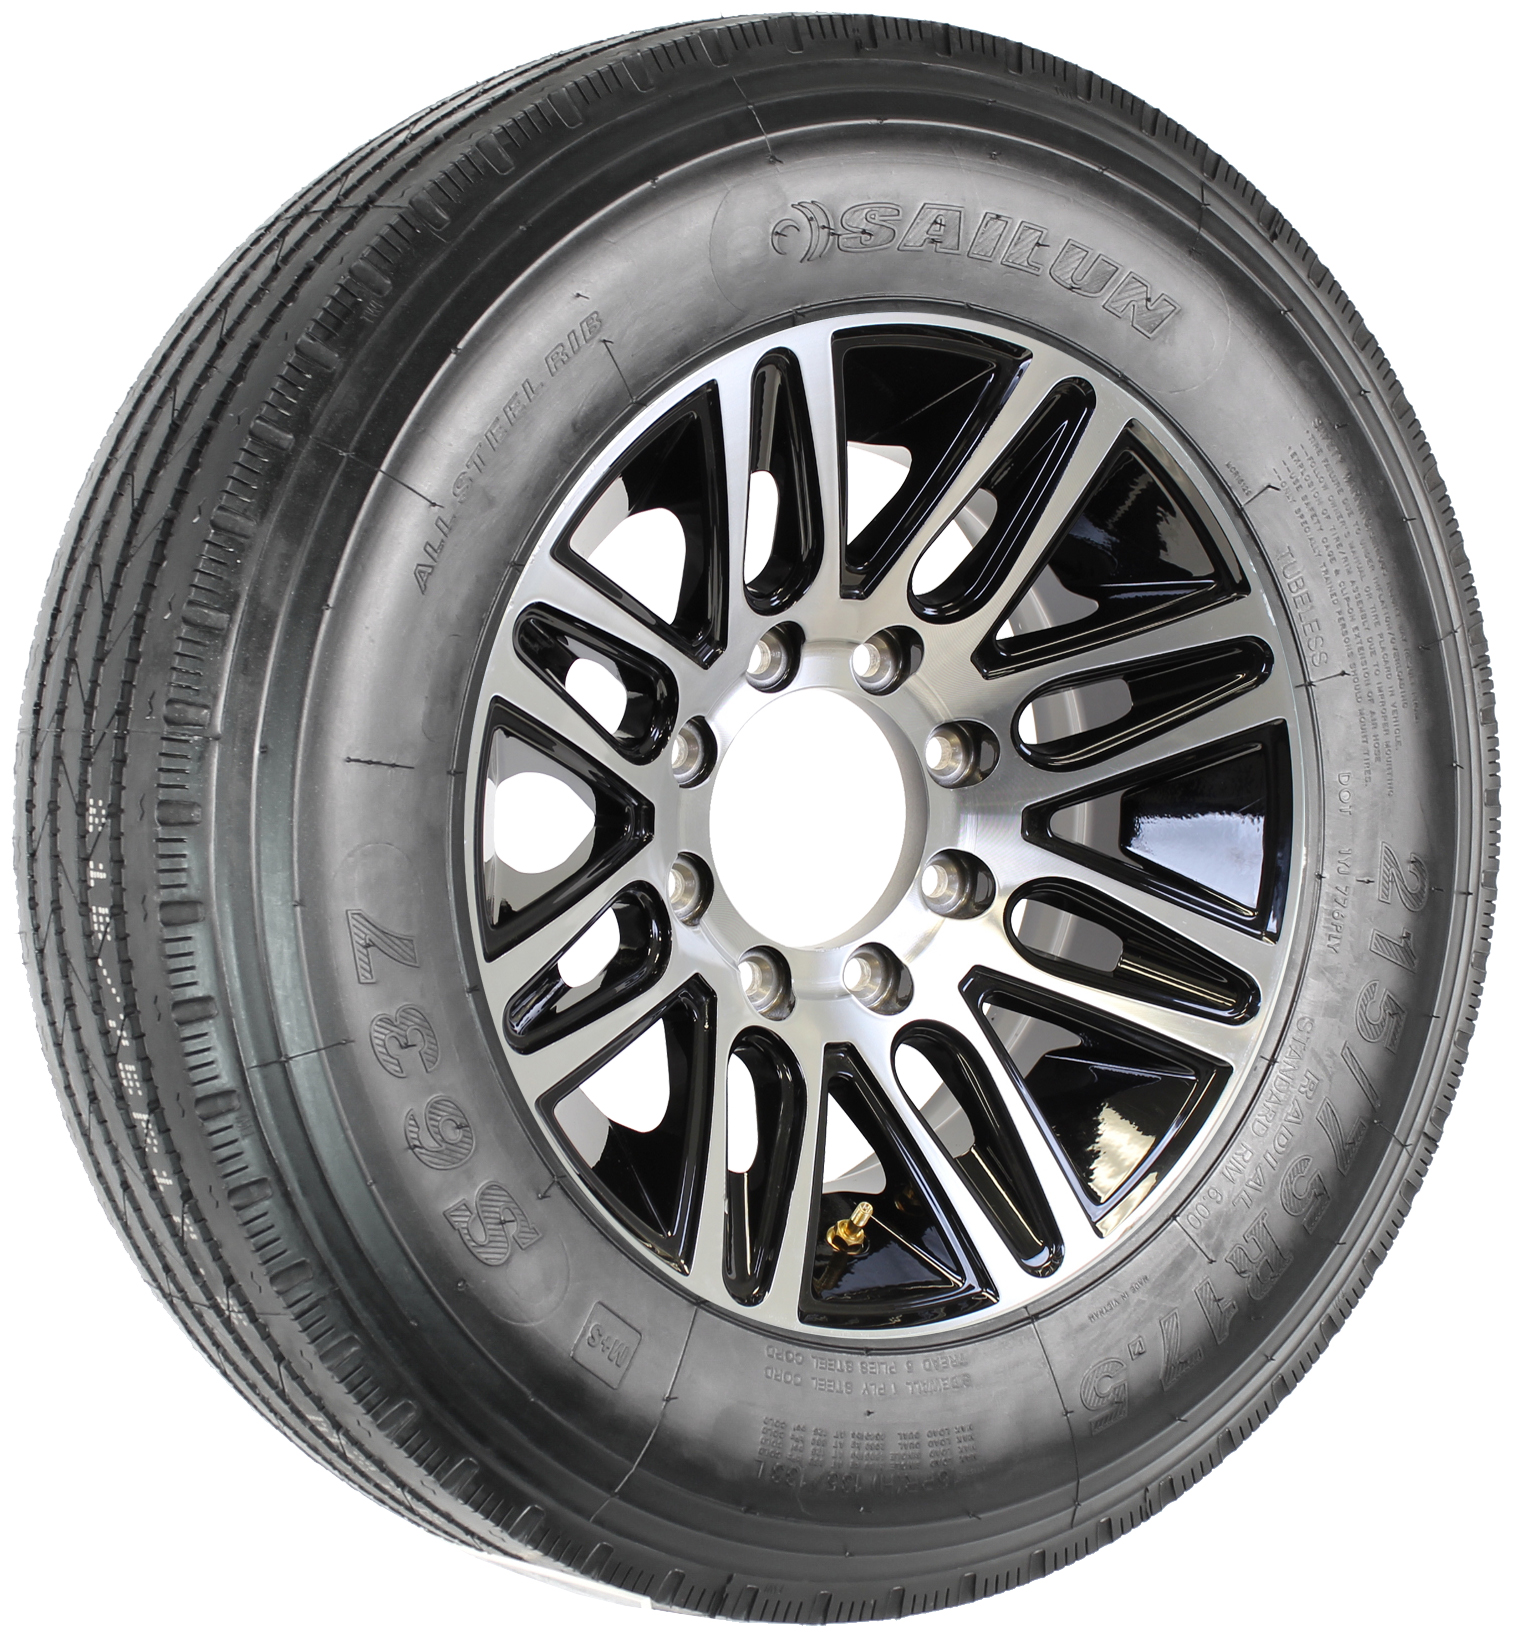 "Sailun 215/75R17.5 LRH Radial Tire on 17.5"" 8-Lug Pinnacle Black Aluminum Assembly Image"